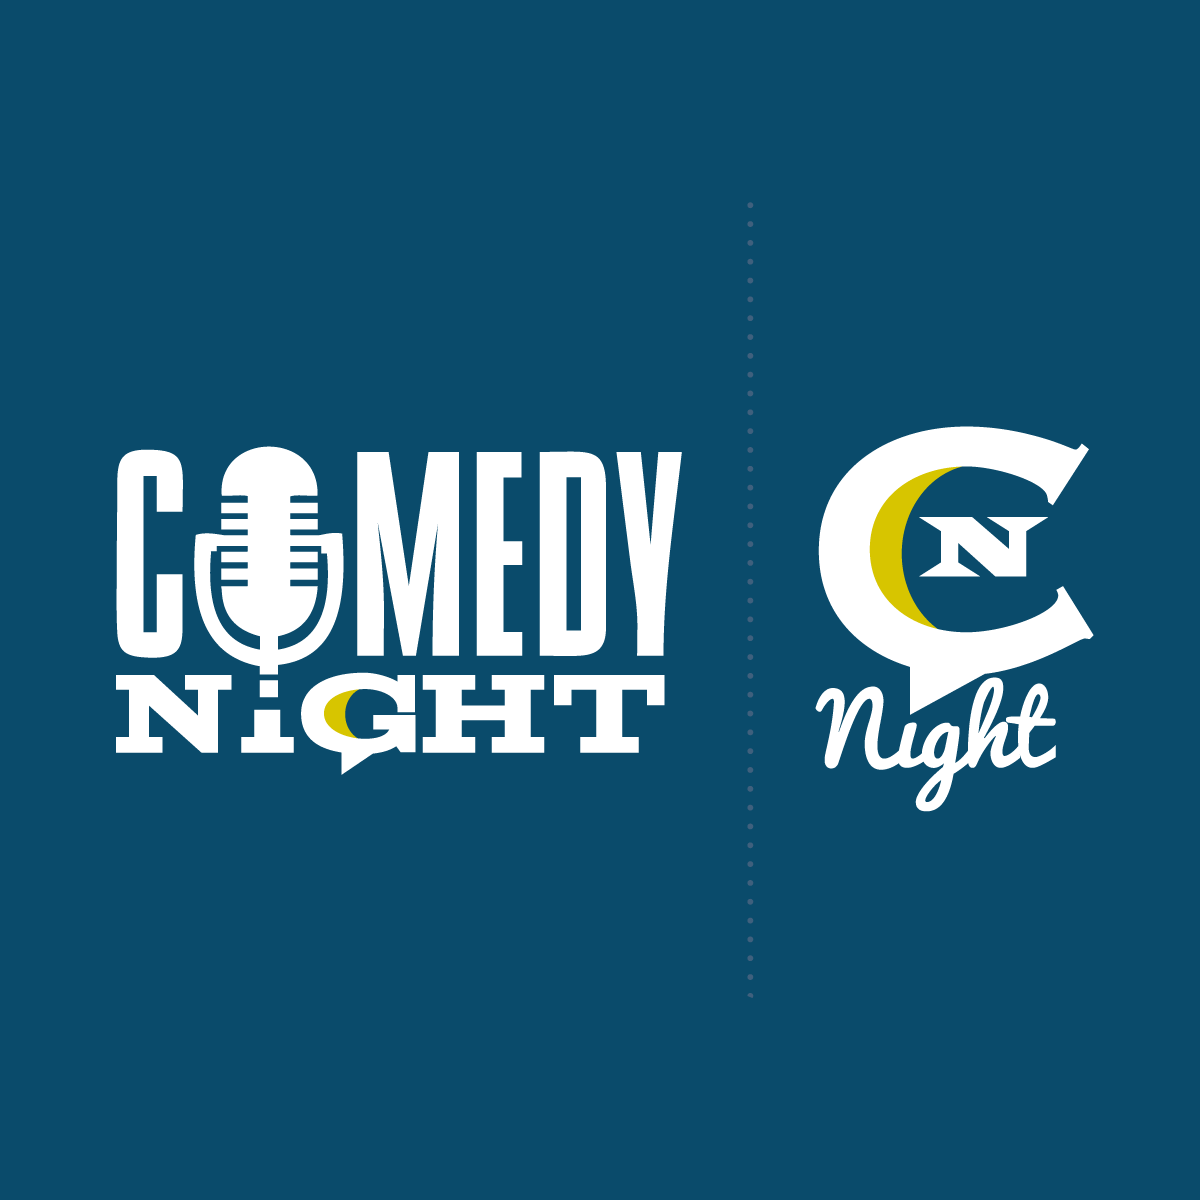 comedy night wordmark and icon